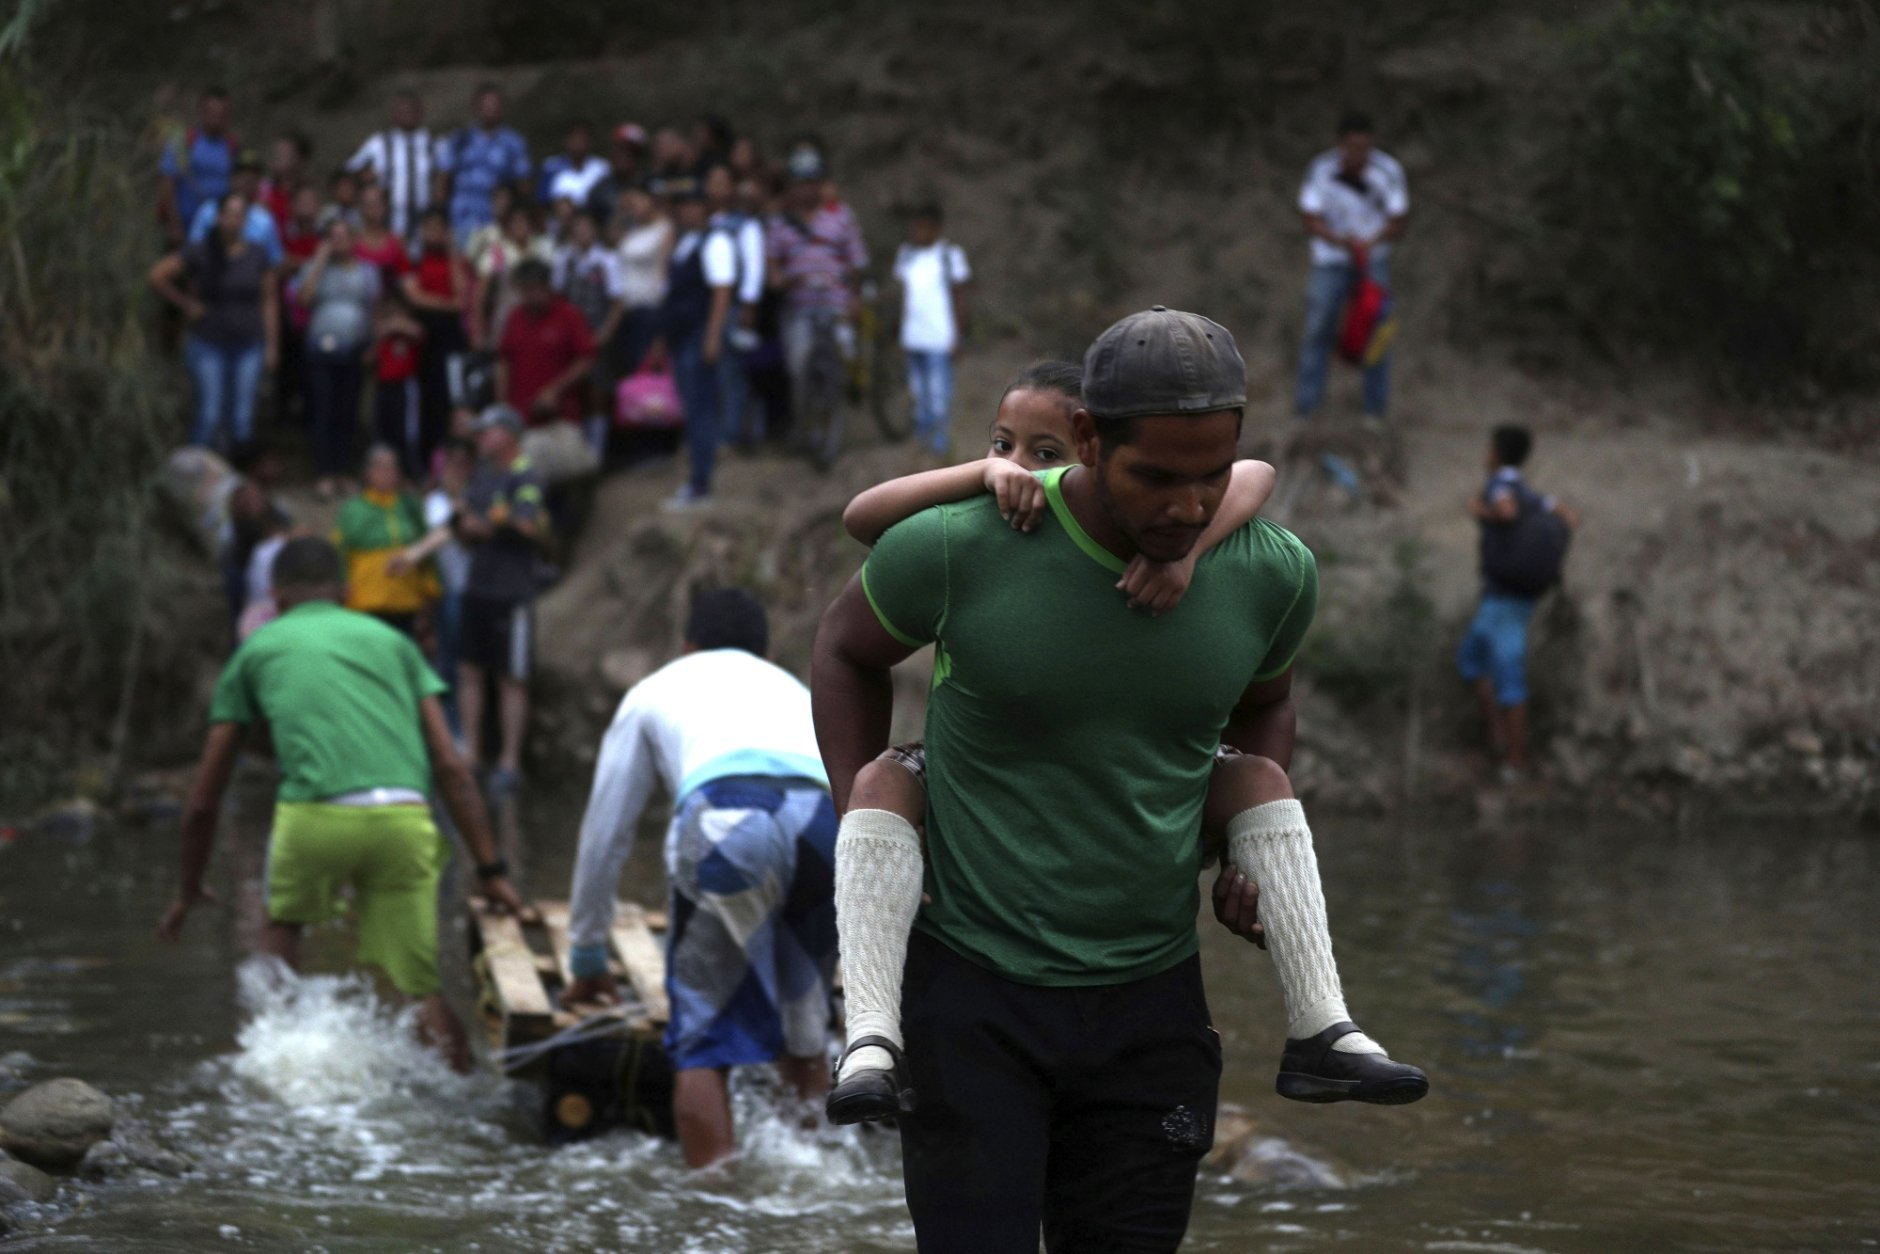 A volunteer gives a Venezuelan student a piggyback ride across the Tachira River into Colombia from Venezuela, near the Francisco de Paula Santander International Bridge which services Cucuta, Colombia, and has been closed by Venezuelan authorities, Wednesday, March 6, 2019. Many Venezuelan parents send children across the busy border, believing they will get a better education there. (AP Photo/Martin Mejia)